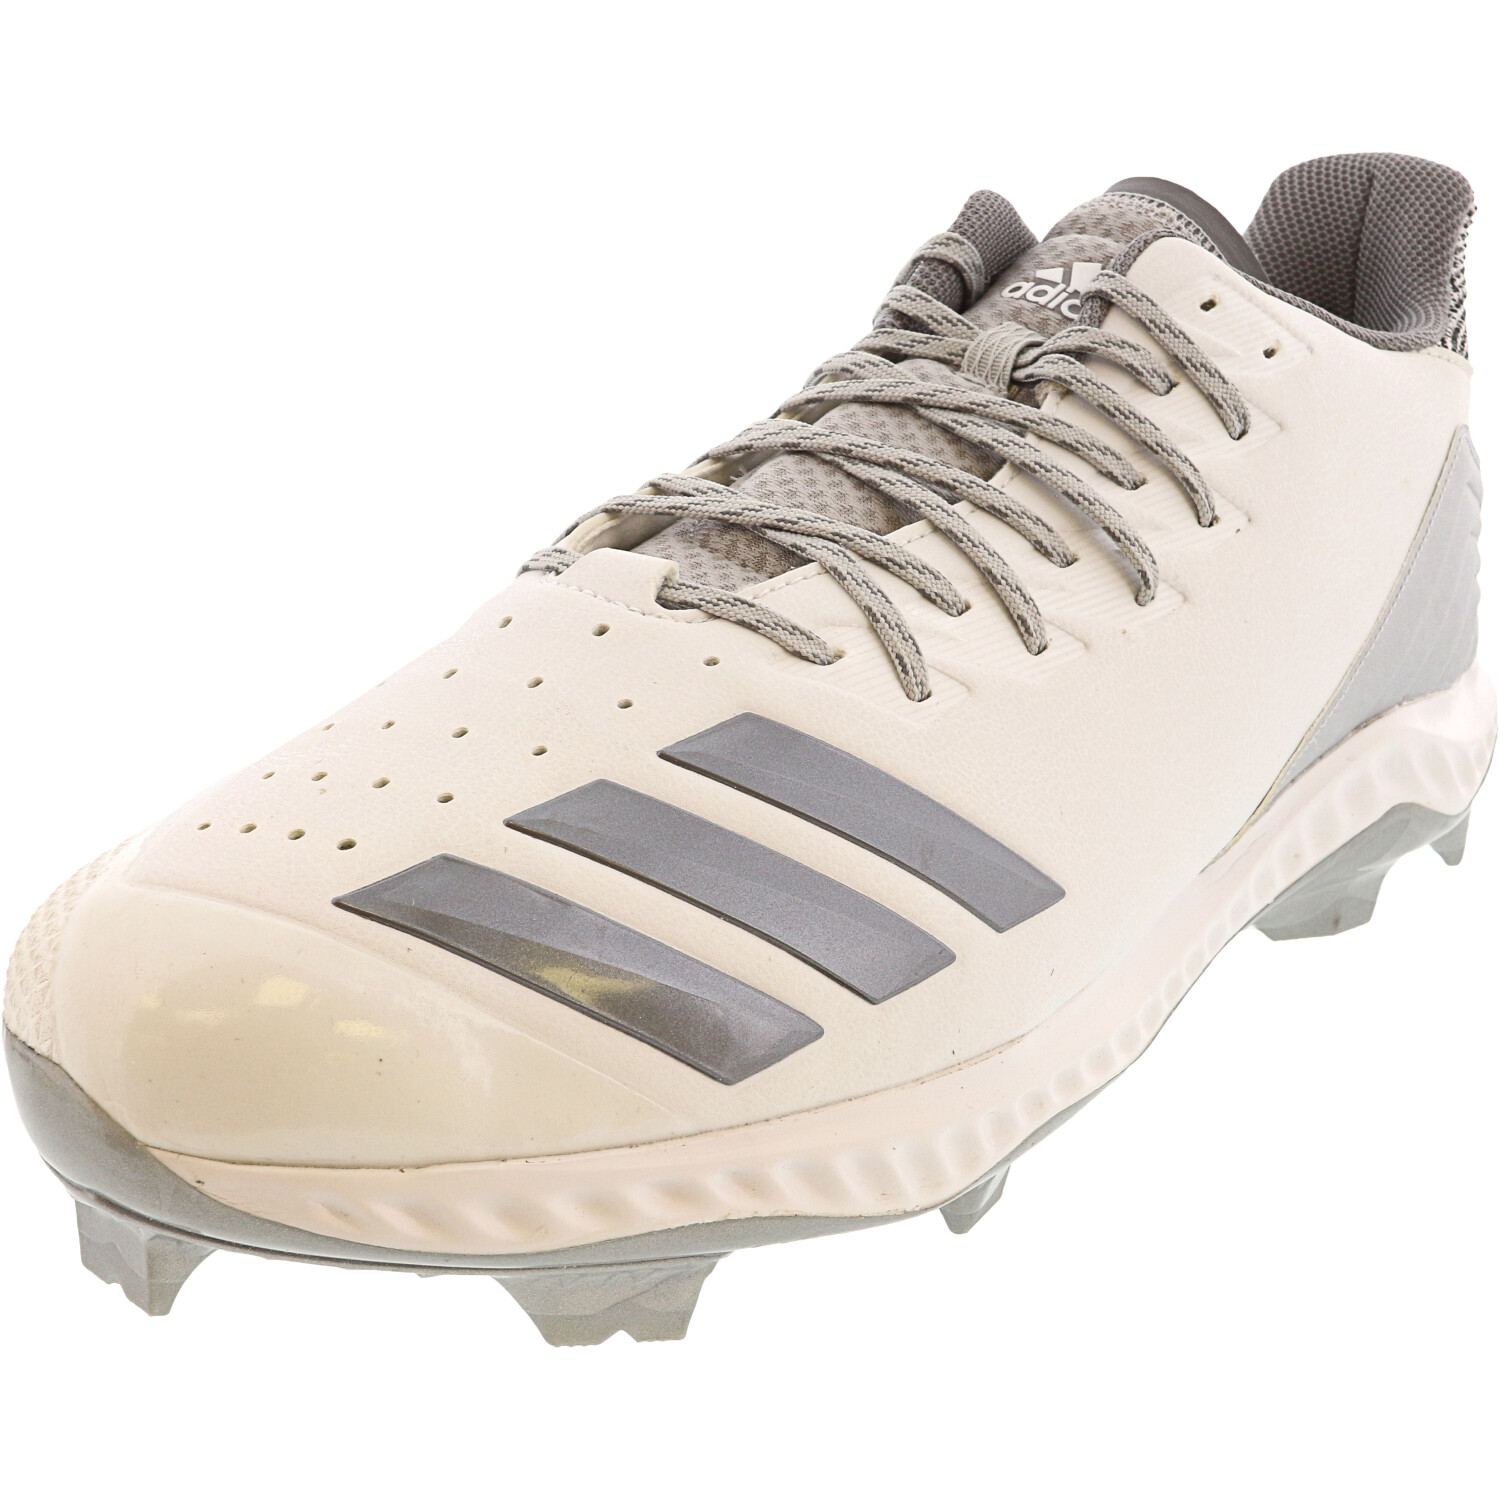 Adidas Men's Icon Bounce Tpu White / Grey Low Top Leather Baseball - 16M